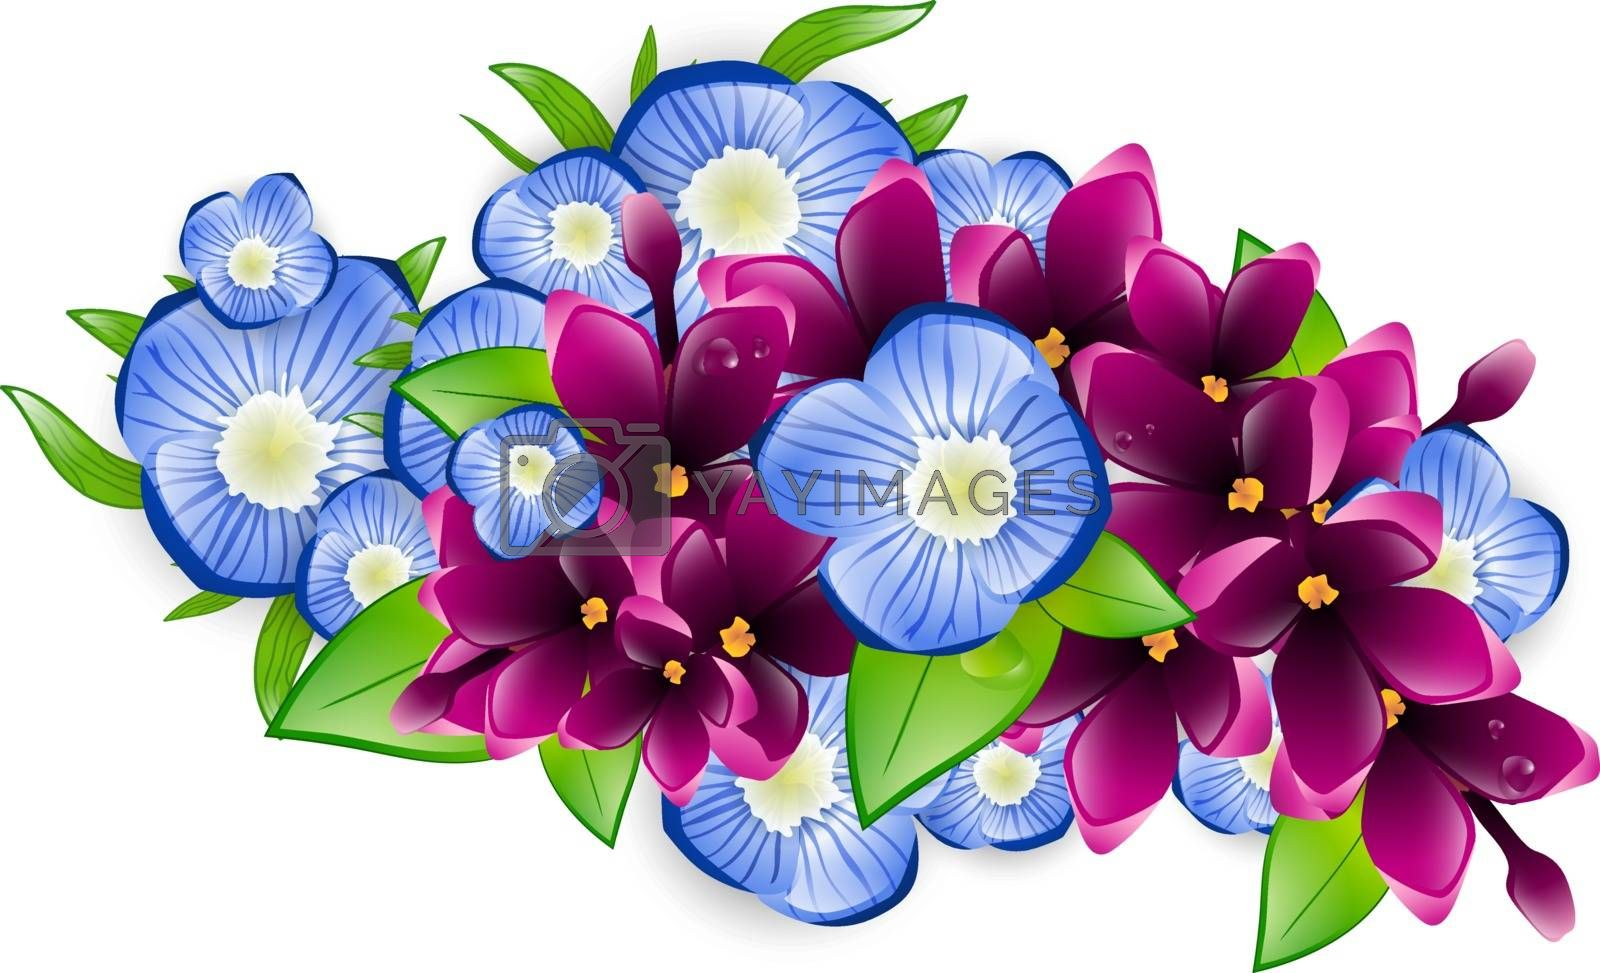 Illustration of Spring Wet Lilac and Forget-me-not Flower Branch